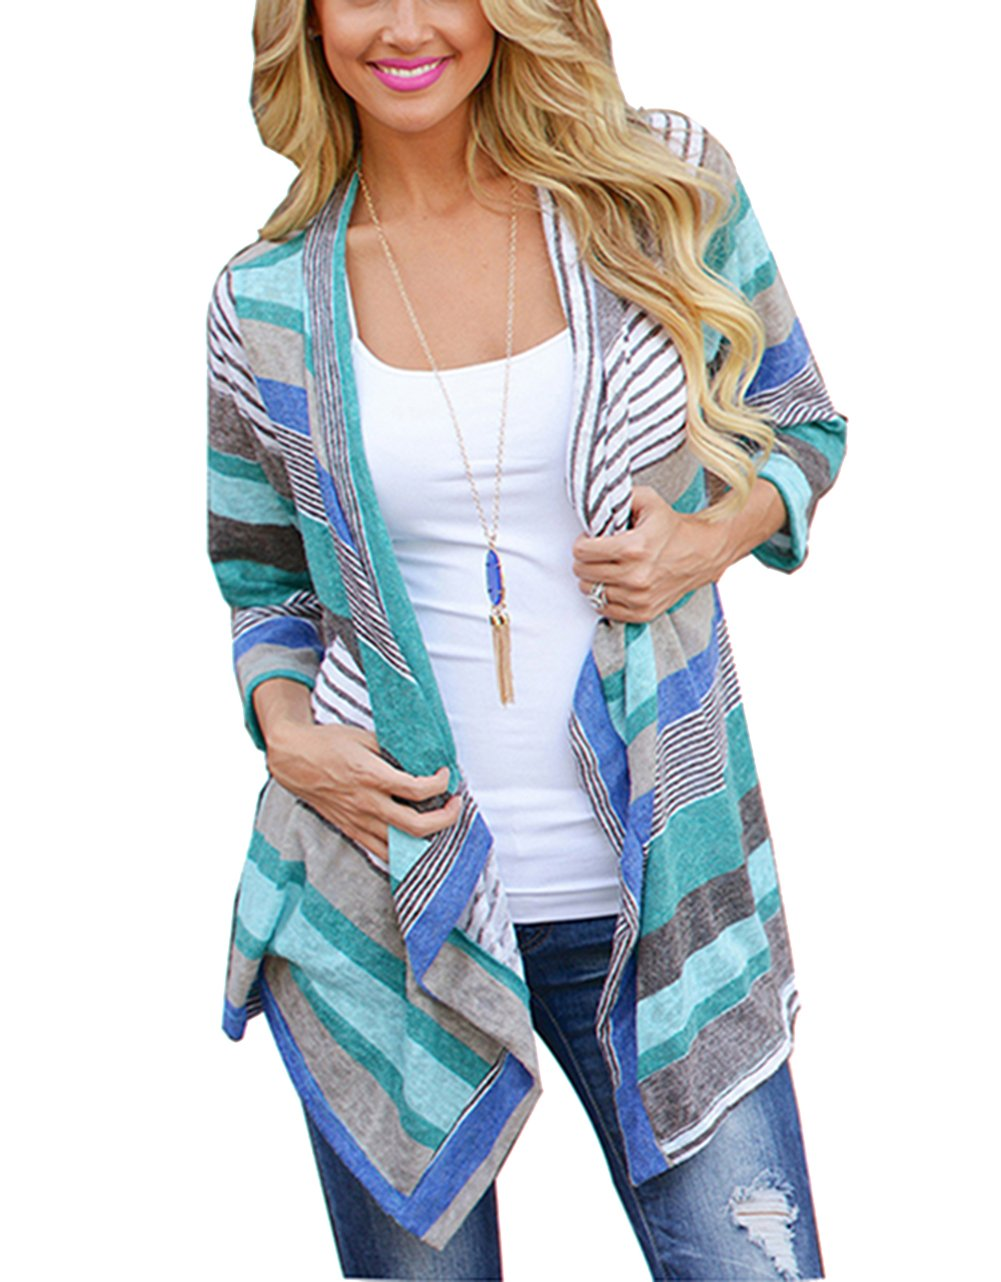 VAYAGER Sweater for Women Front Open Cardigans Irregular Design Cover up Blouse Blue M